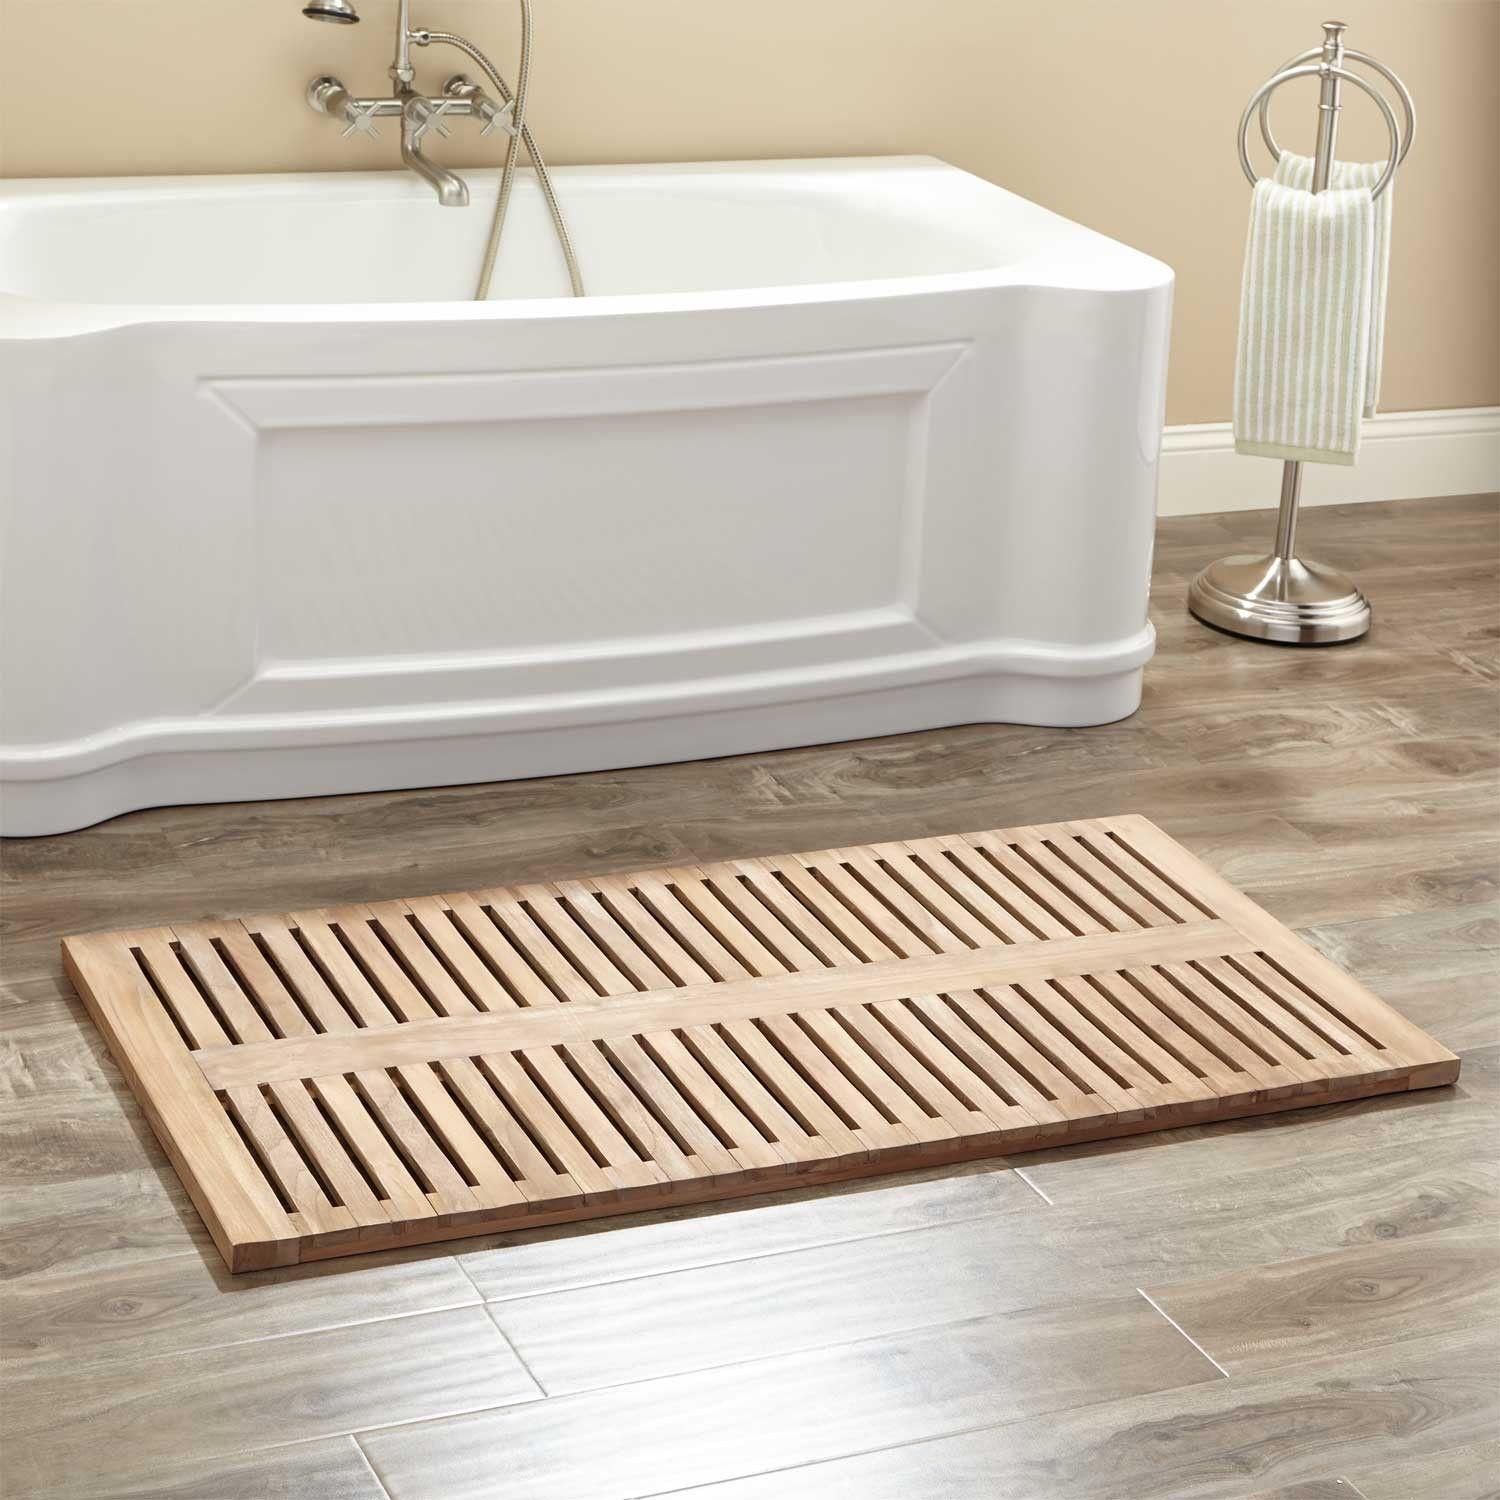 dp shower mats x inch care specialties amazon wood arb health wwbyalgl mat base personal teak com